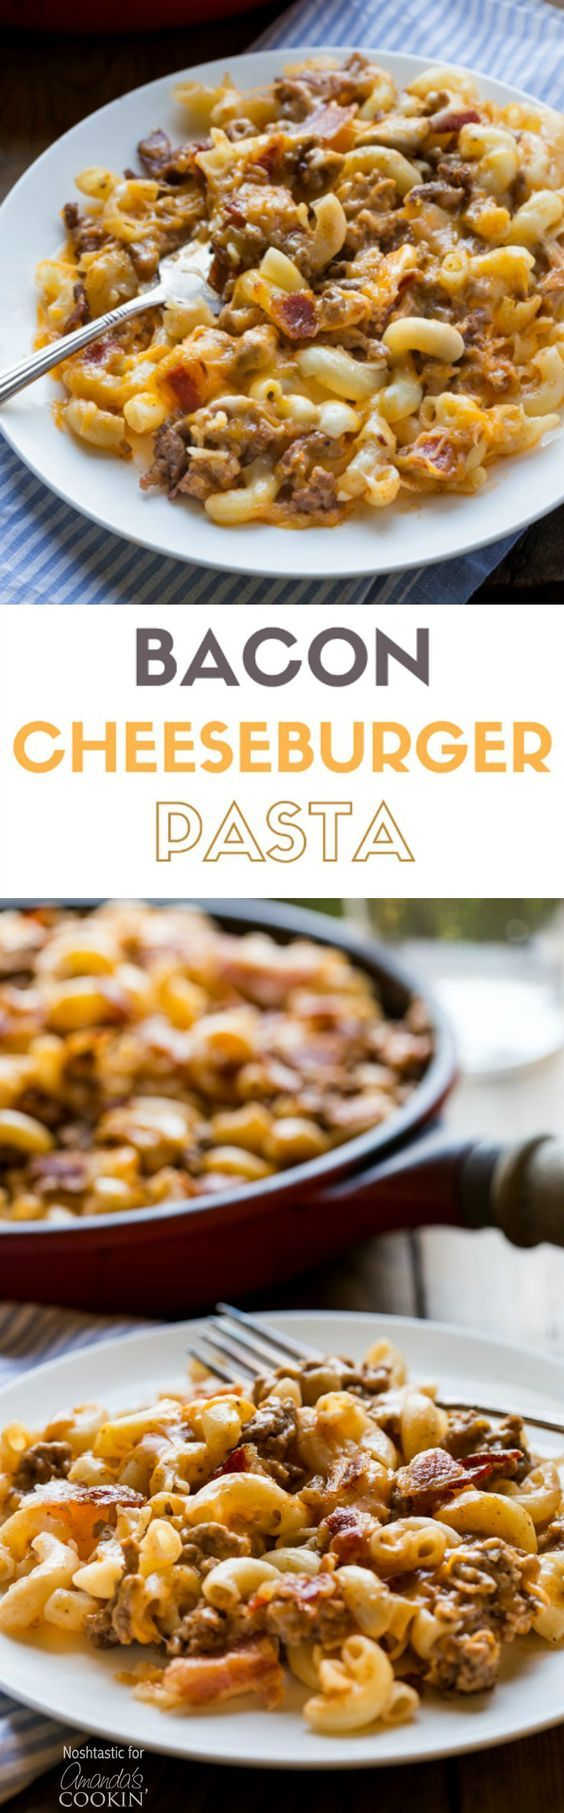 This delicious Bacon Cheeseburger Pasta combines elbow macaroni, ground beef, and bacon along with cheddar and mozzarella cheeses for a hearty weeknight family dinner!   can be made gluten free